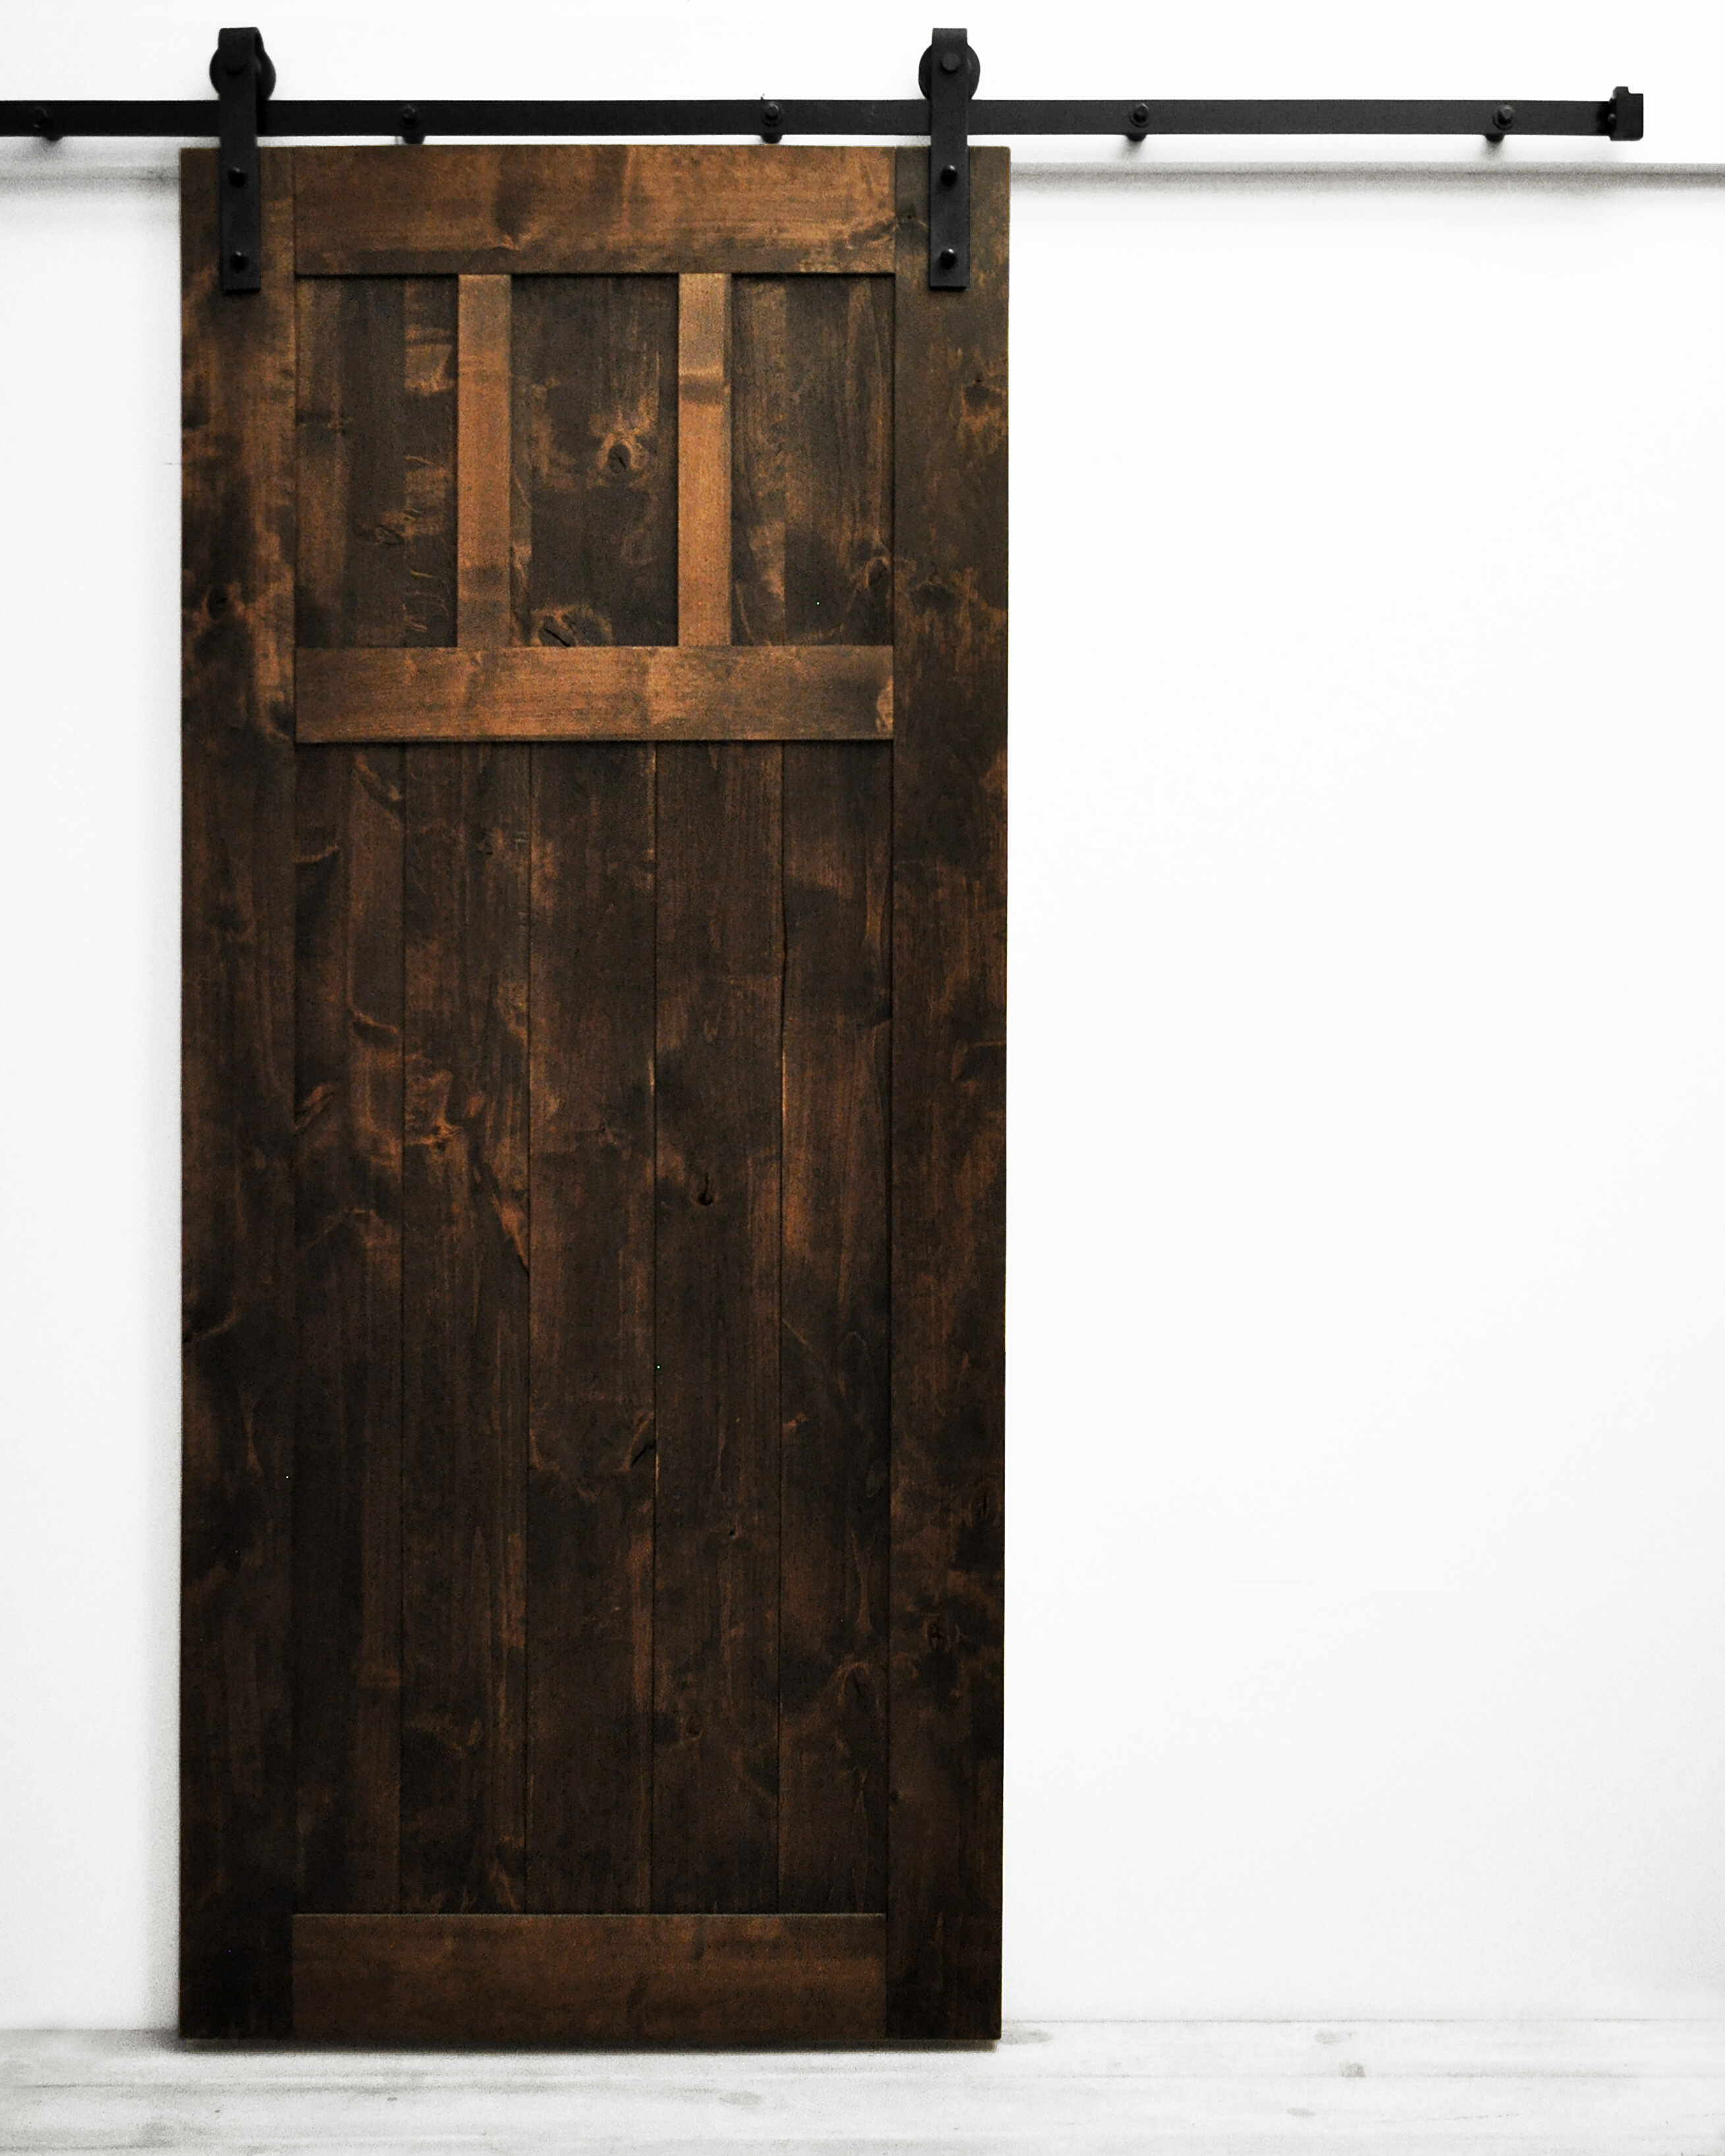 Dogberry Collections Paneled Wood Finish Room Dividers Knotty Alder Barn Door With Installation Hardware Kit Wayfair